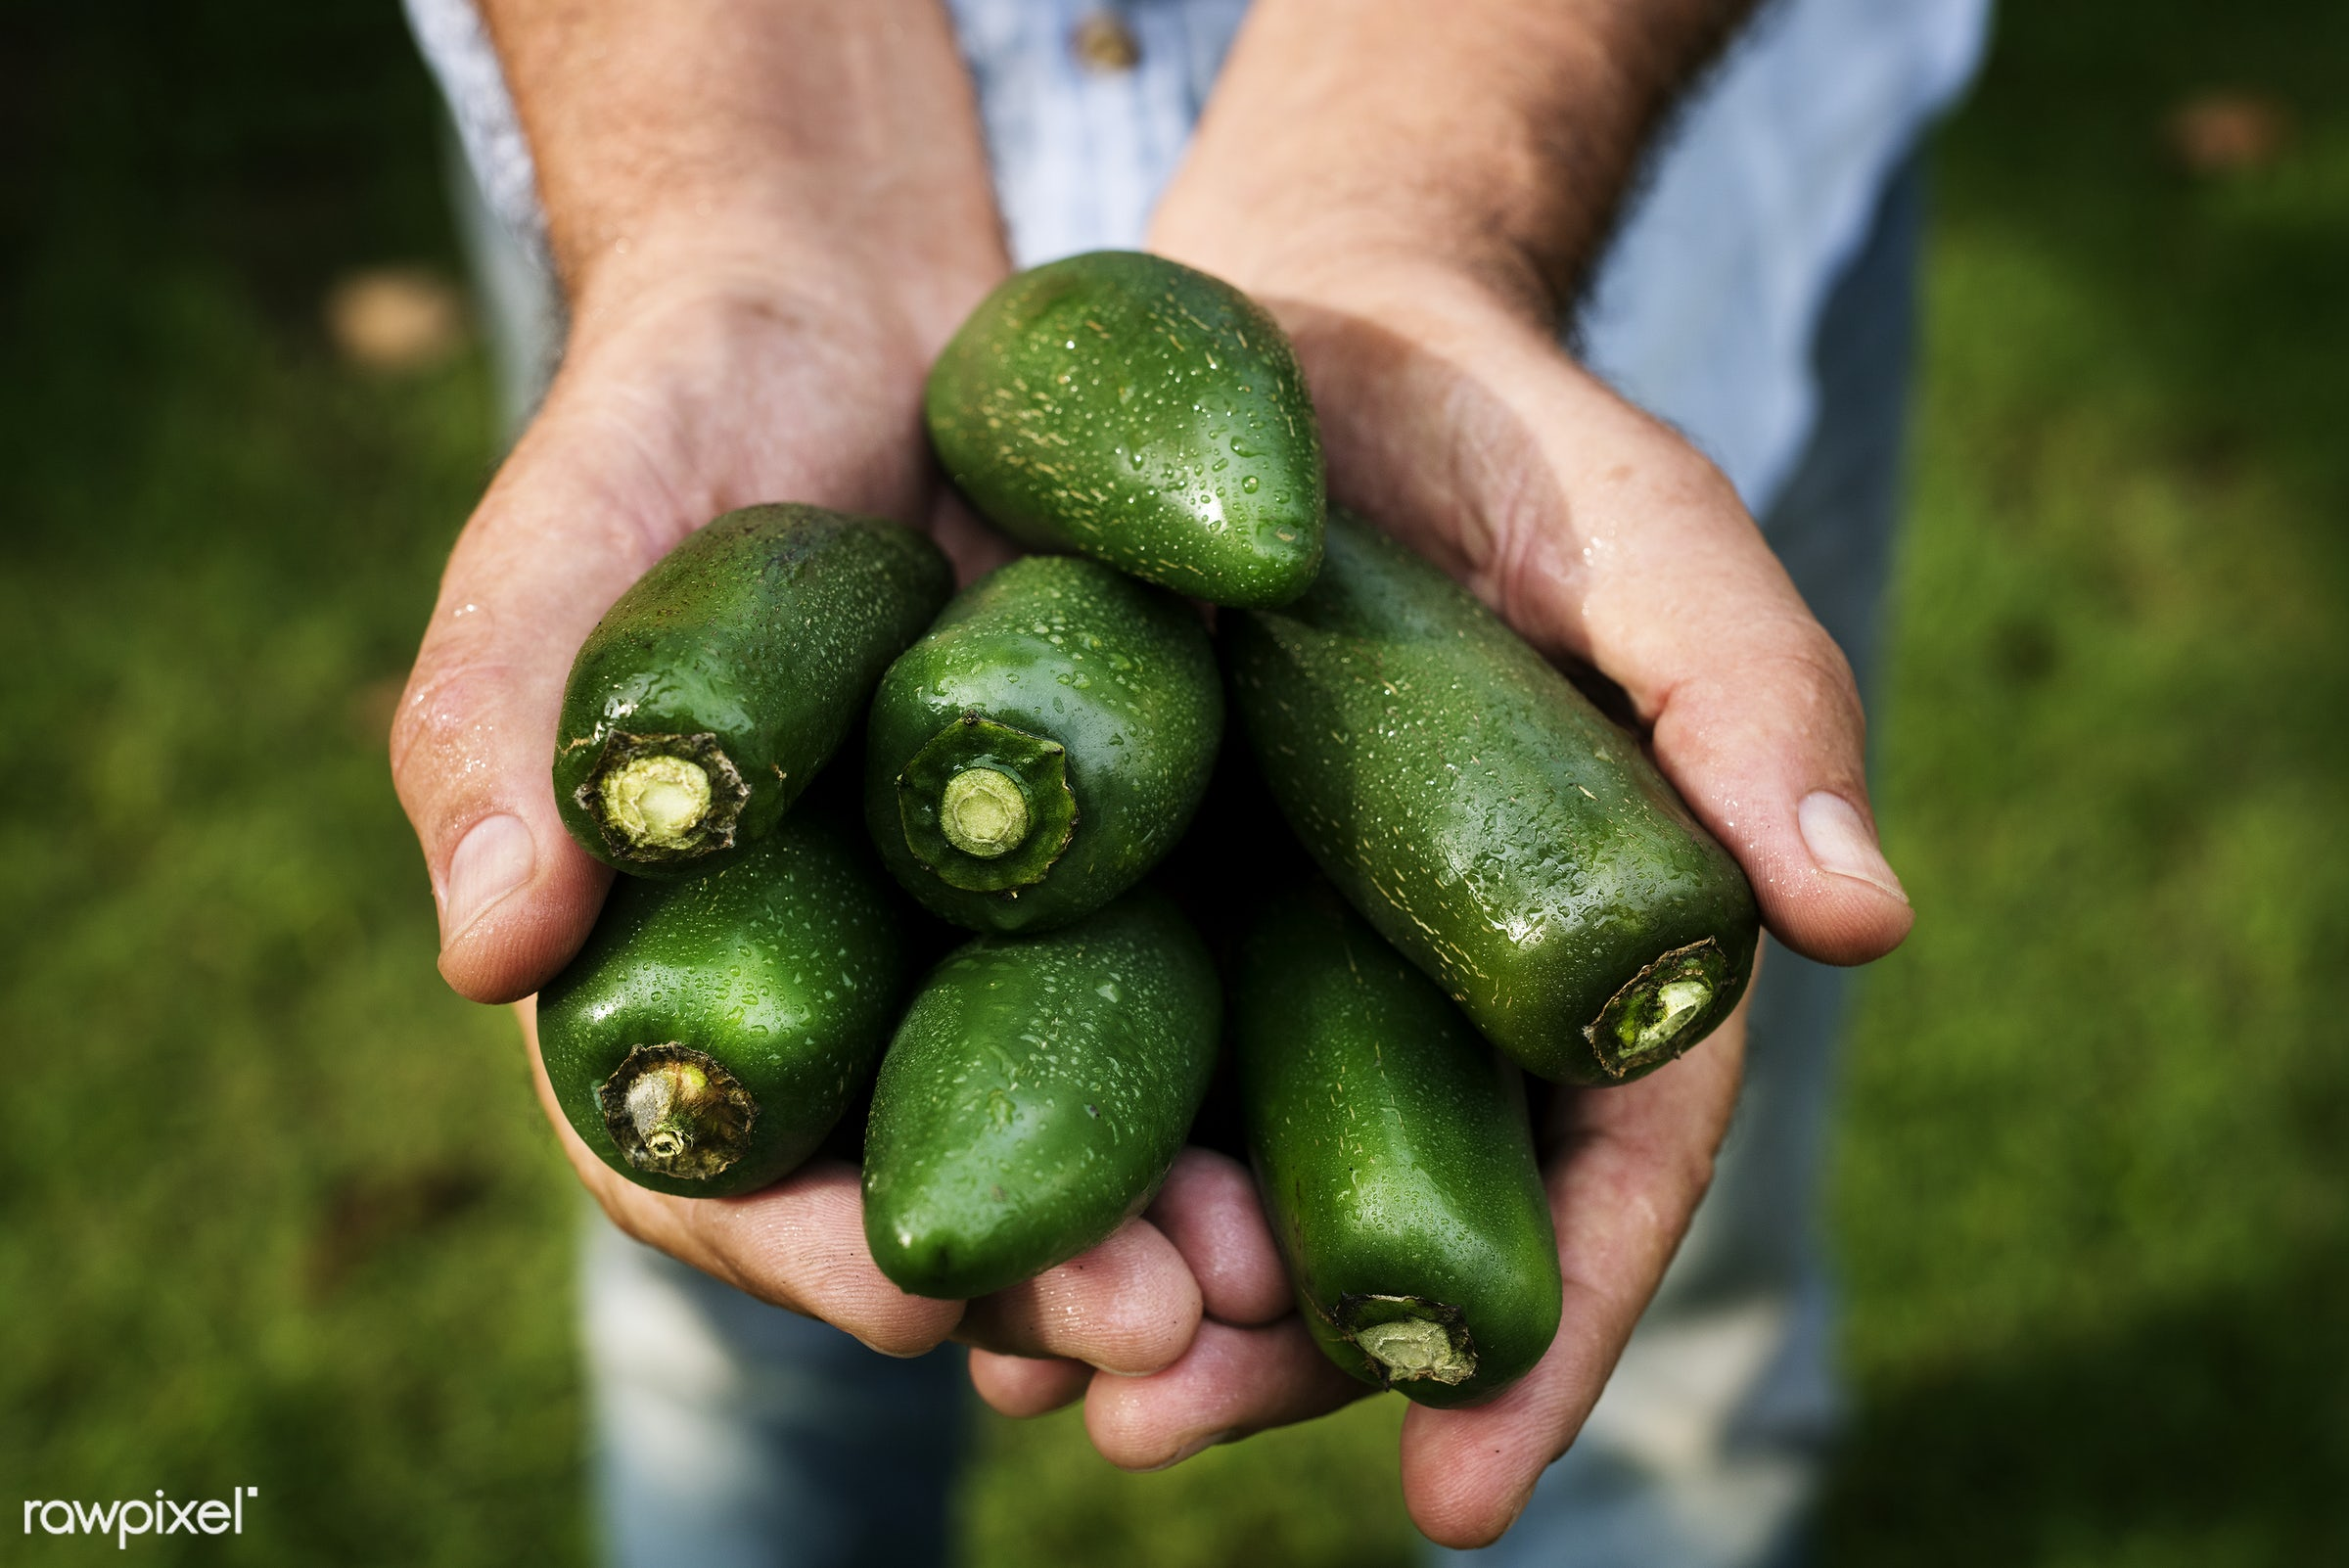 Fresh jalapeno peppers - plant, raw, cuisine, holding, crop, nature, jalapeno, fresh, hands, ingredient, cultivation,...